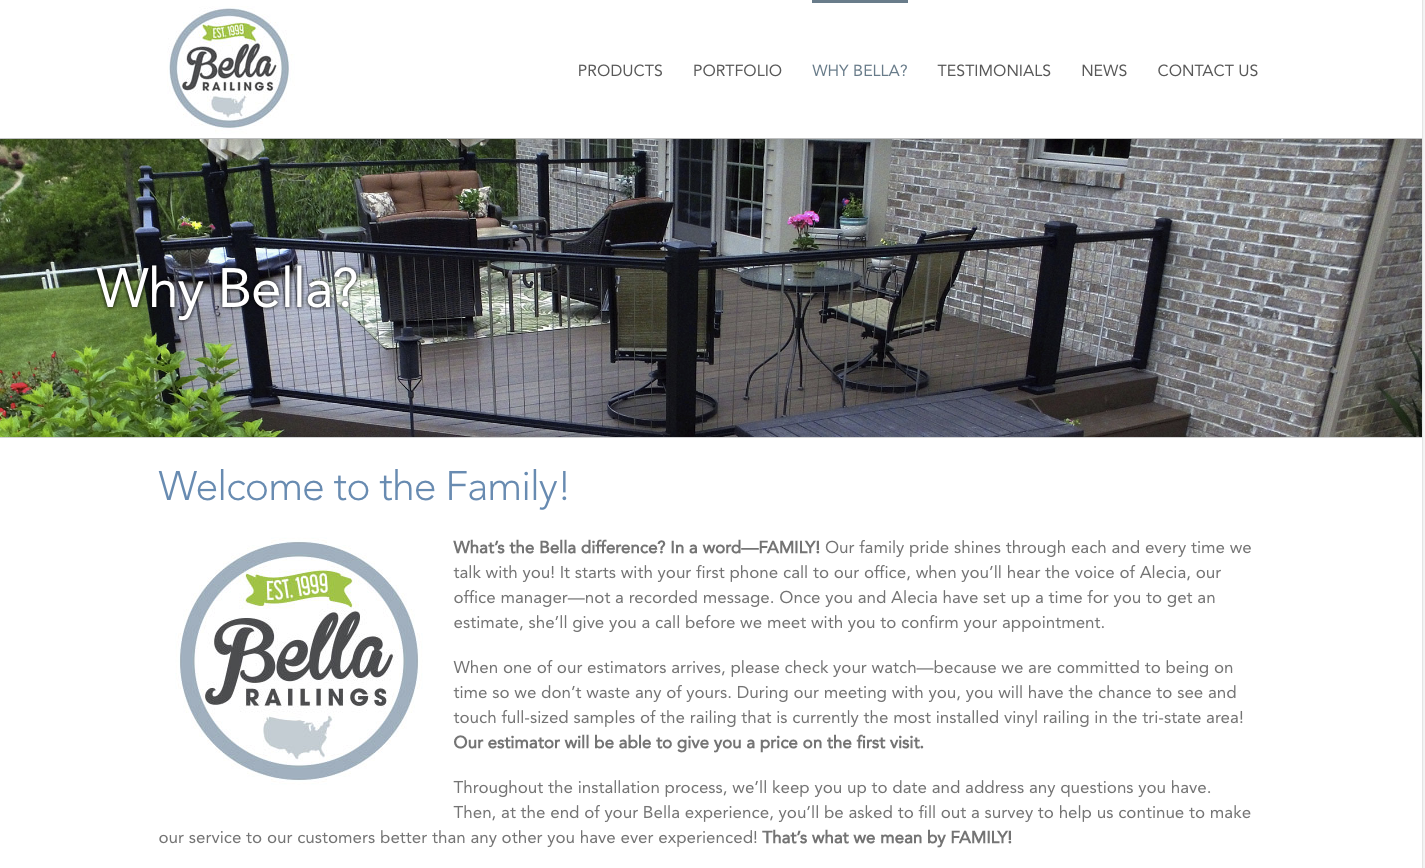 Bella Railings